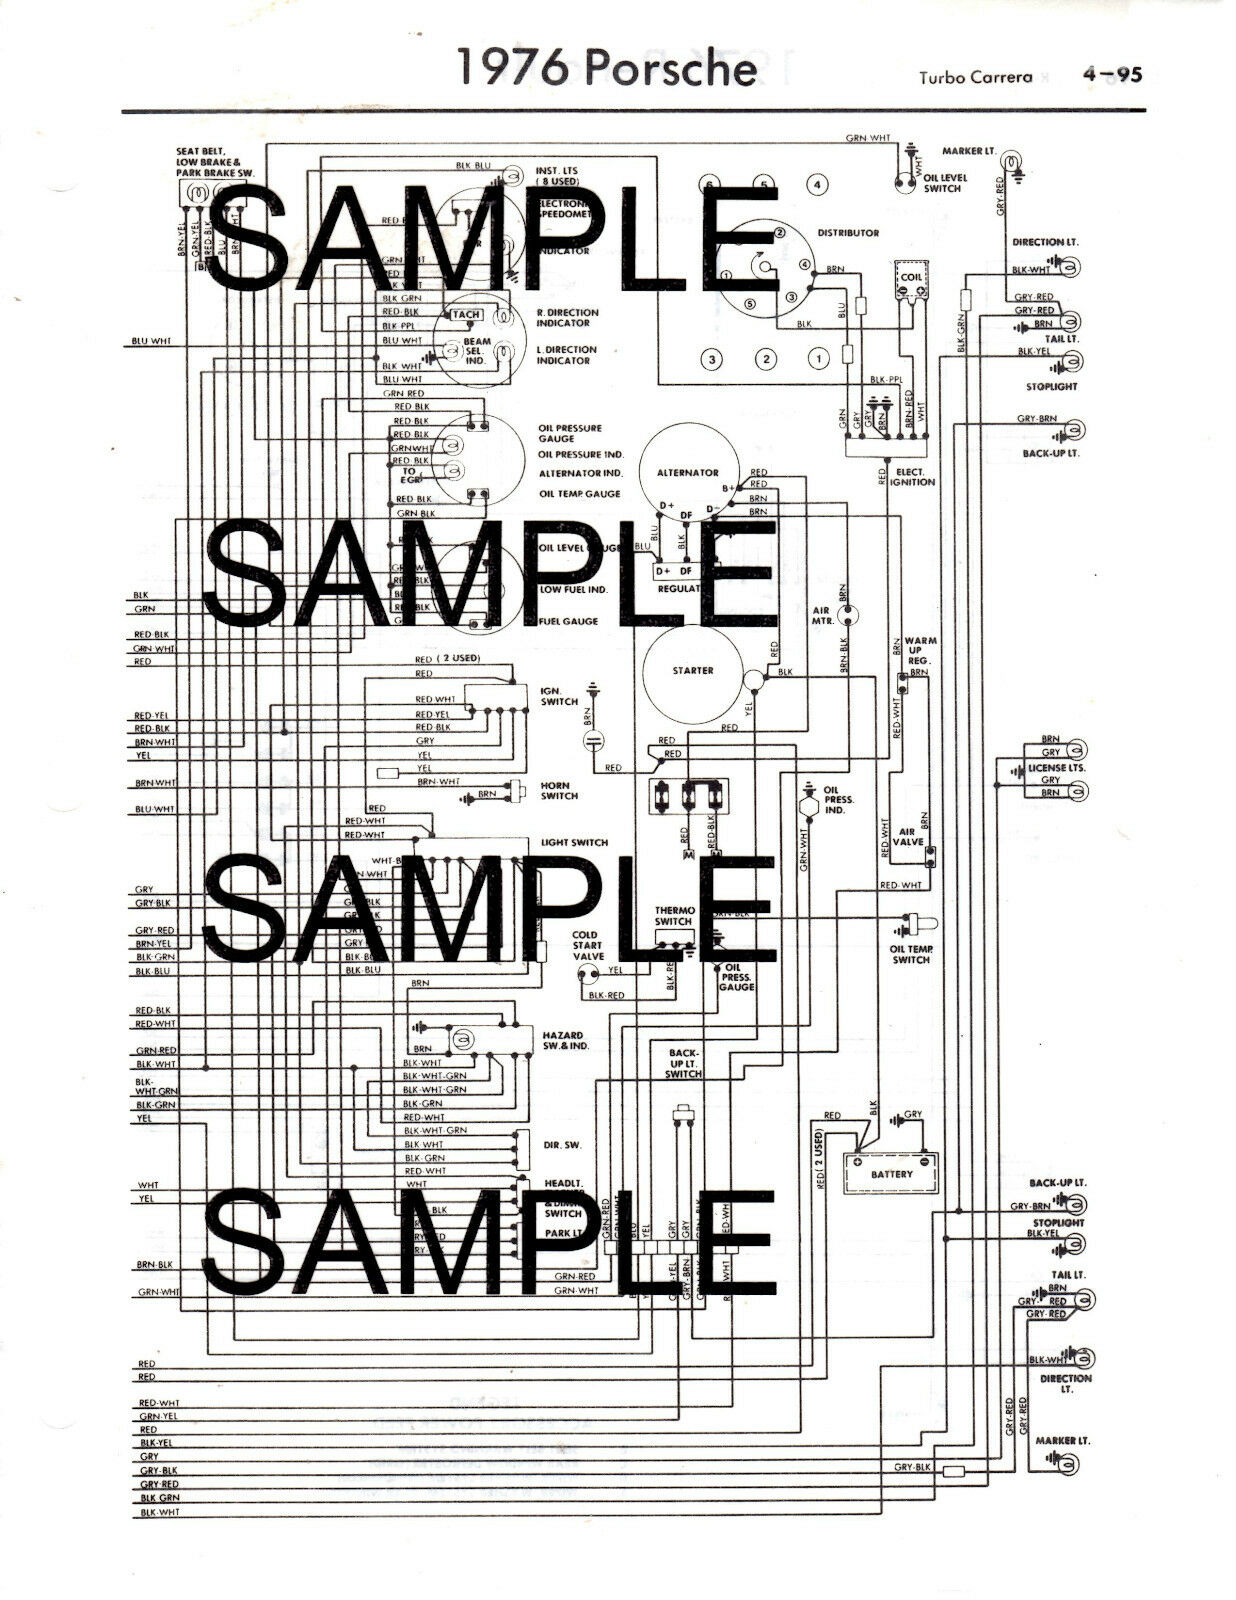 1976 Porsche 912e 76 Wiring Diagram Guide Chart 76bk 1299 Picclick 914 Ignition 1 Of 2free Shipping